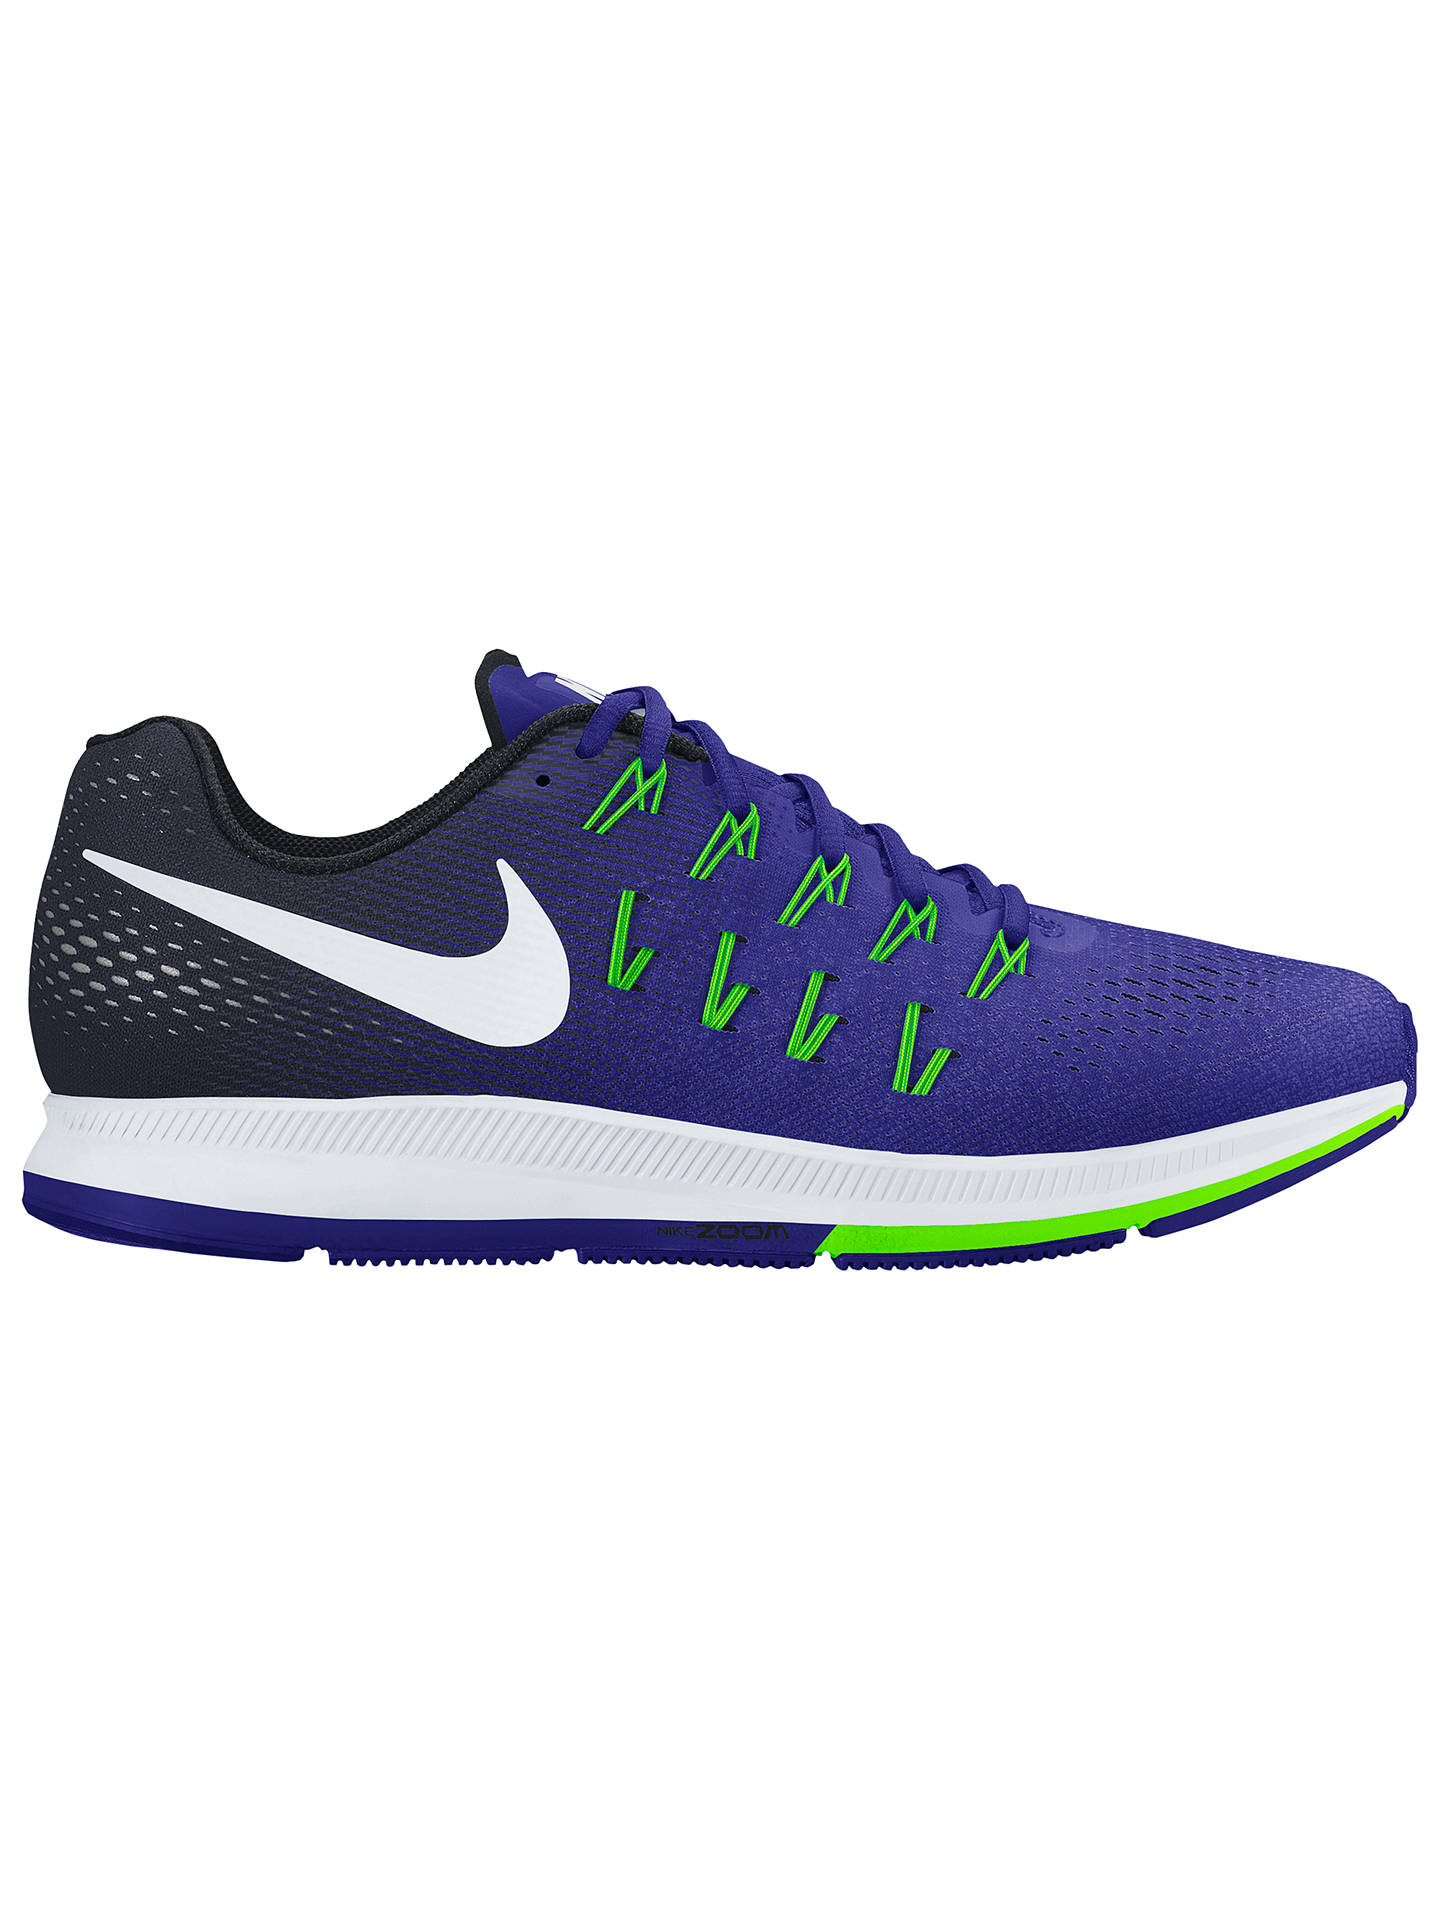 c09645be9210 Nike Air Zoom Pegasus 33 Men s Running Shoes at John Lewis   Partners